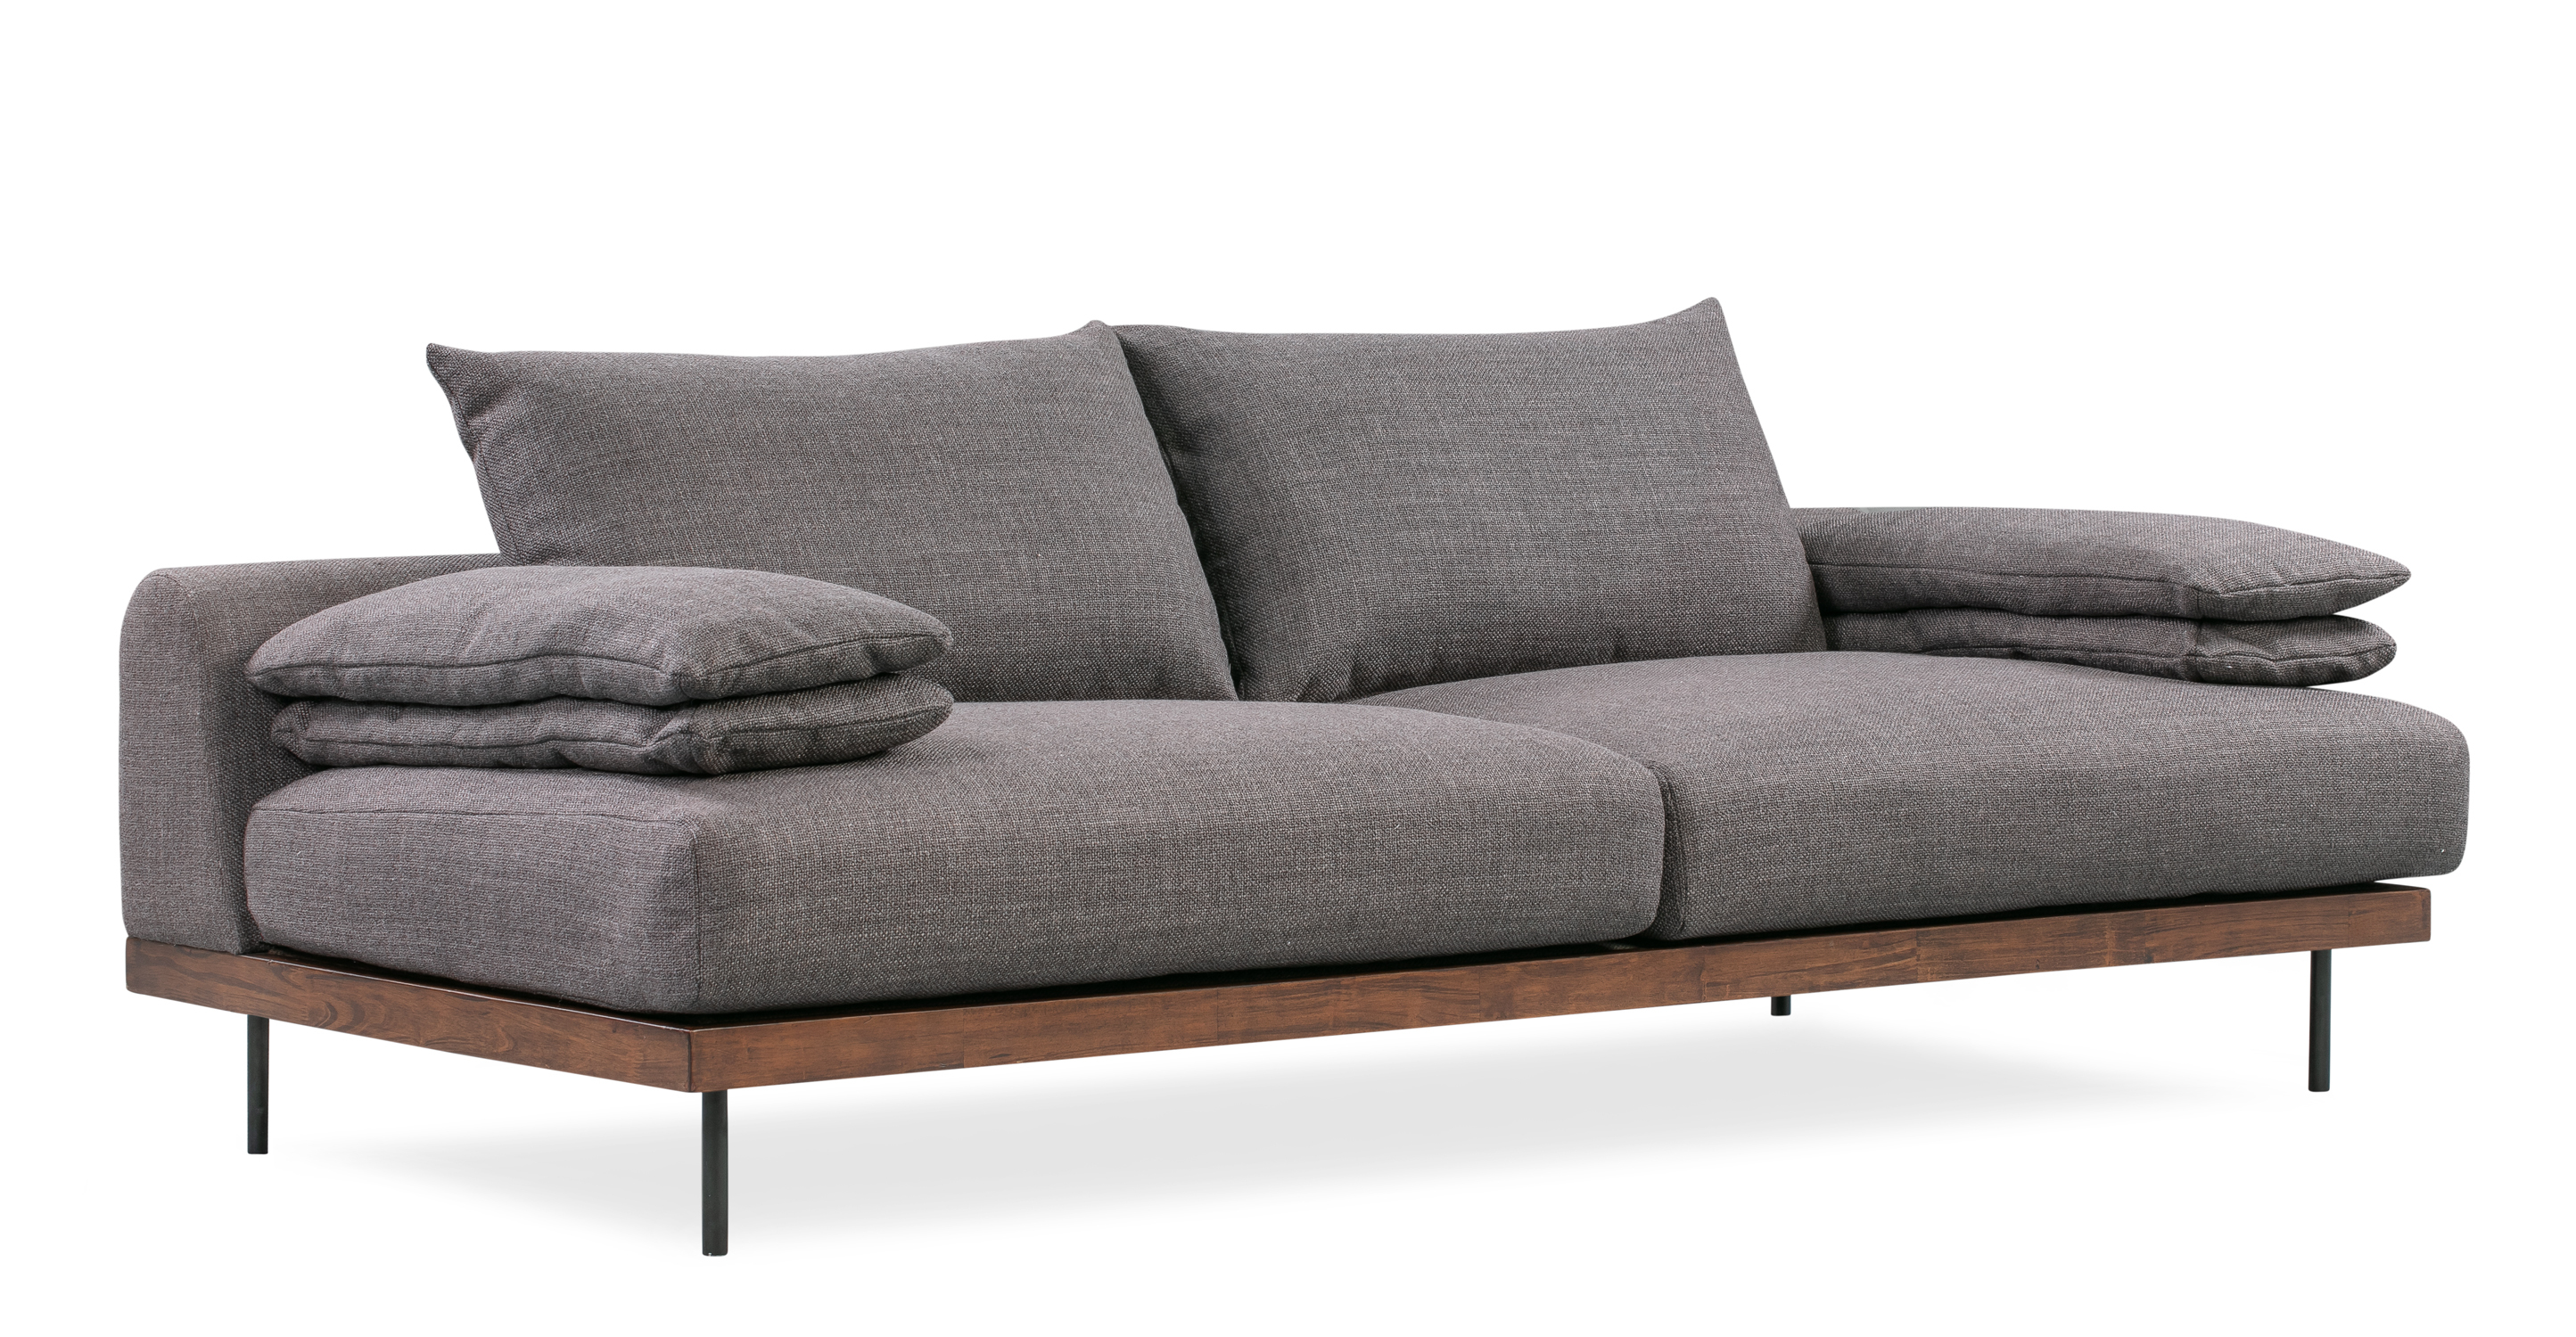 "Malibu 91"" Fabric Sofa Sleeper, Elyx Dior Grey"